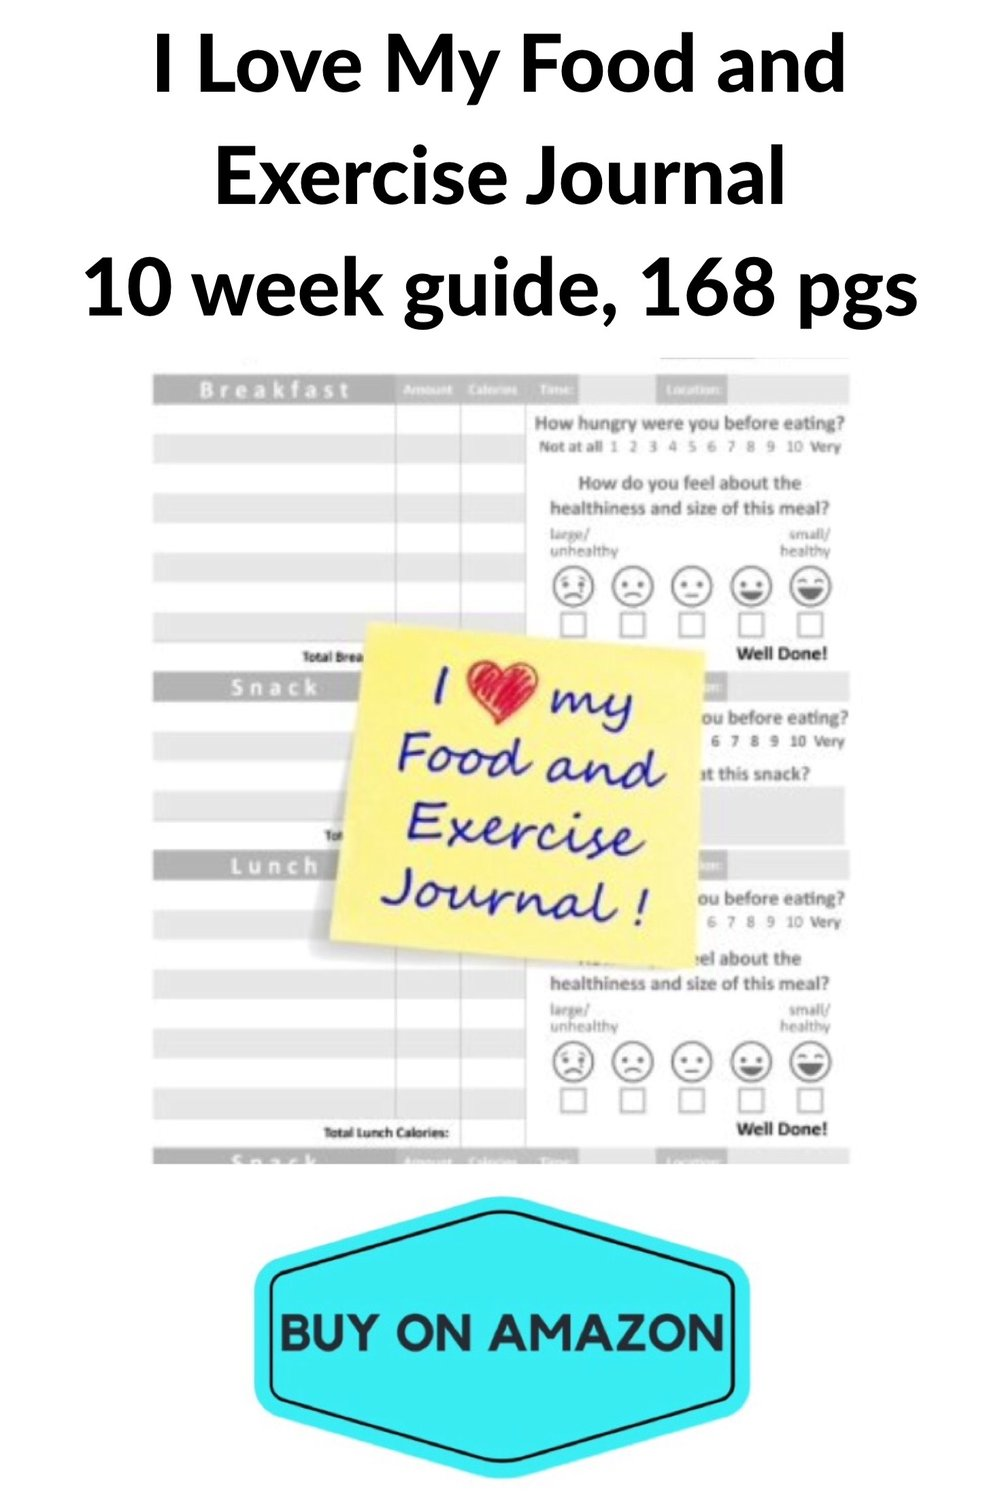 'I Love My Food and Exercise' Journal, 10 Week Guide